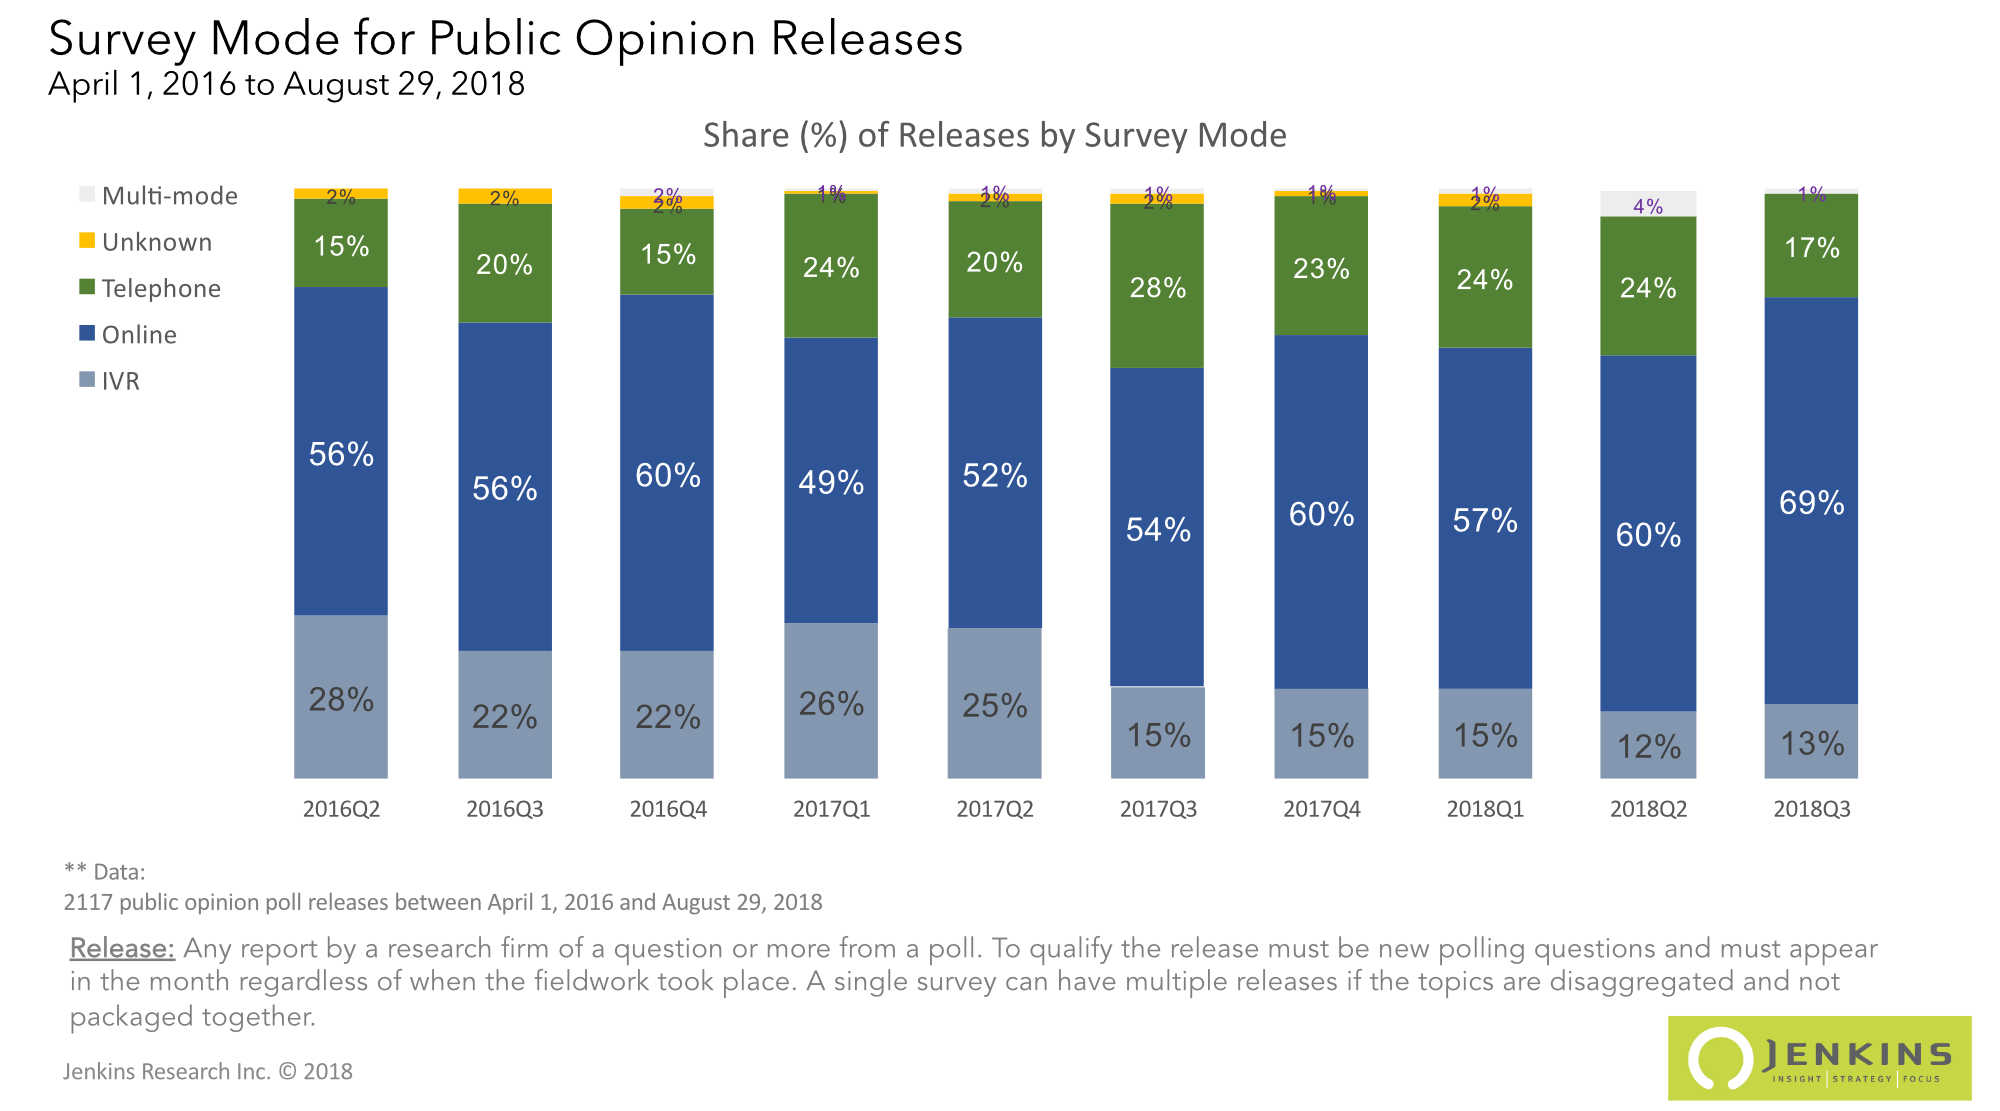 The trend since April 2016 in the mode of survey used for publicly released polls